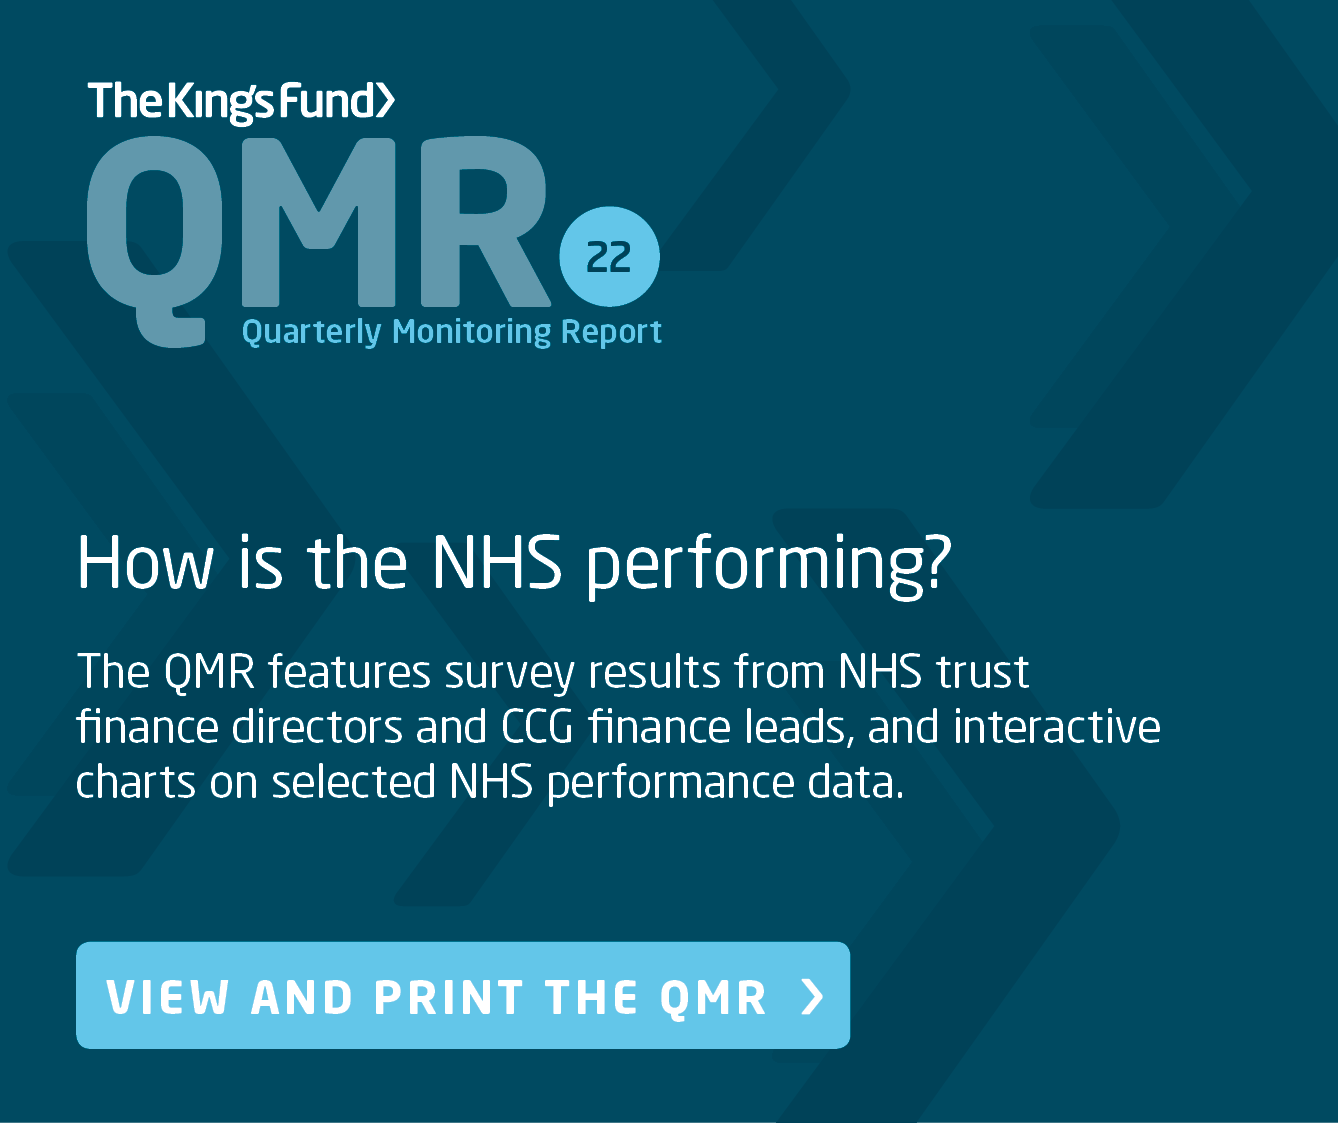 View and print the QMR